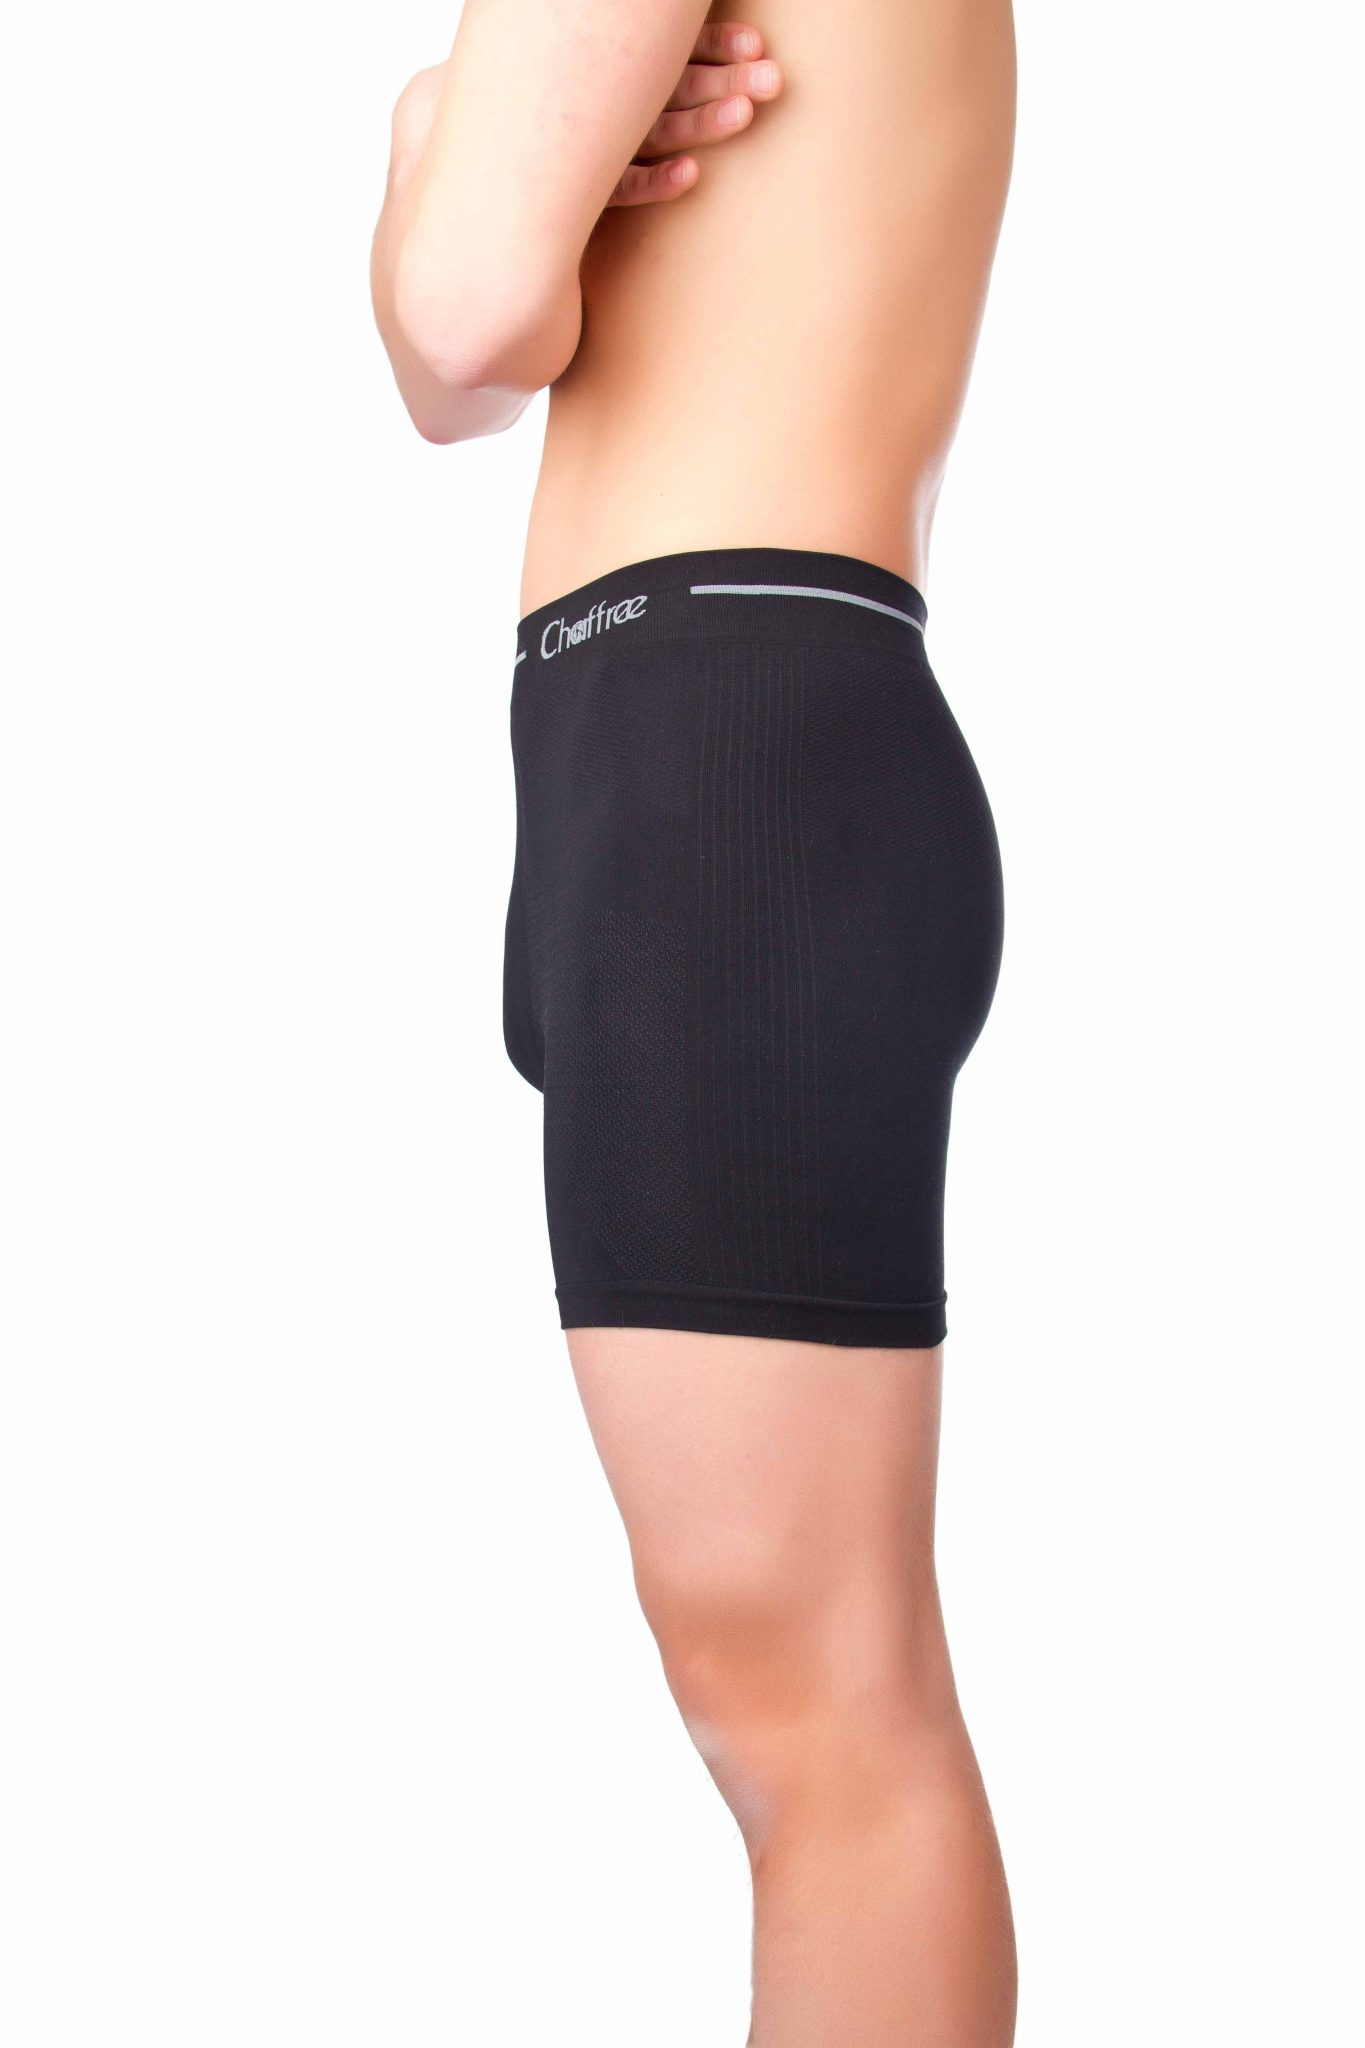 Boxer Briefs for Men Boxer briefs are a relatively new style to the men's underwear arena. Yes they're a few years old, but briefs and boxers were the primary styles for men up until this newbie was born.